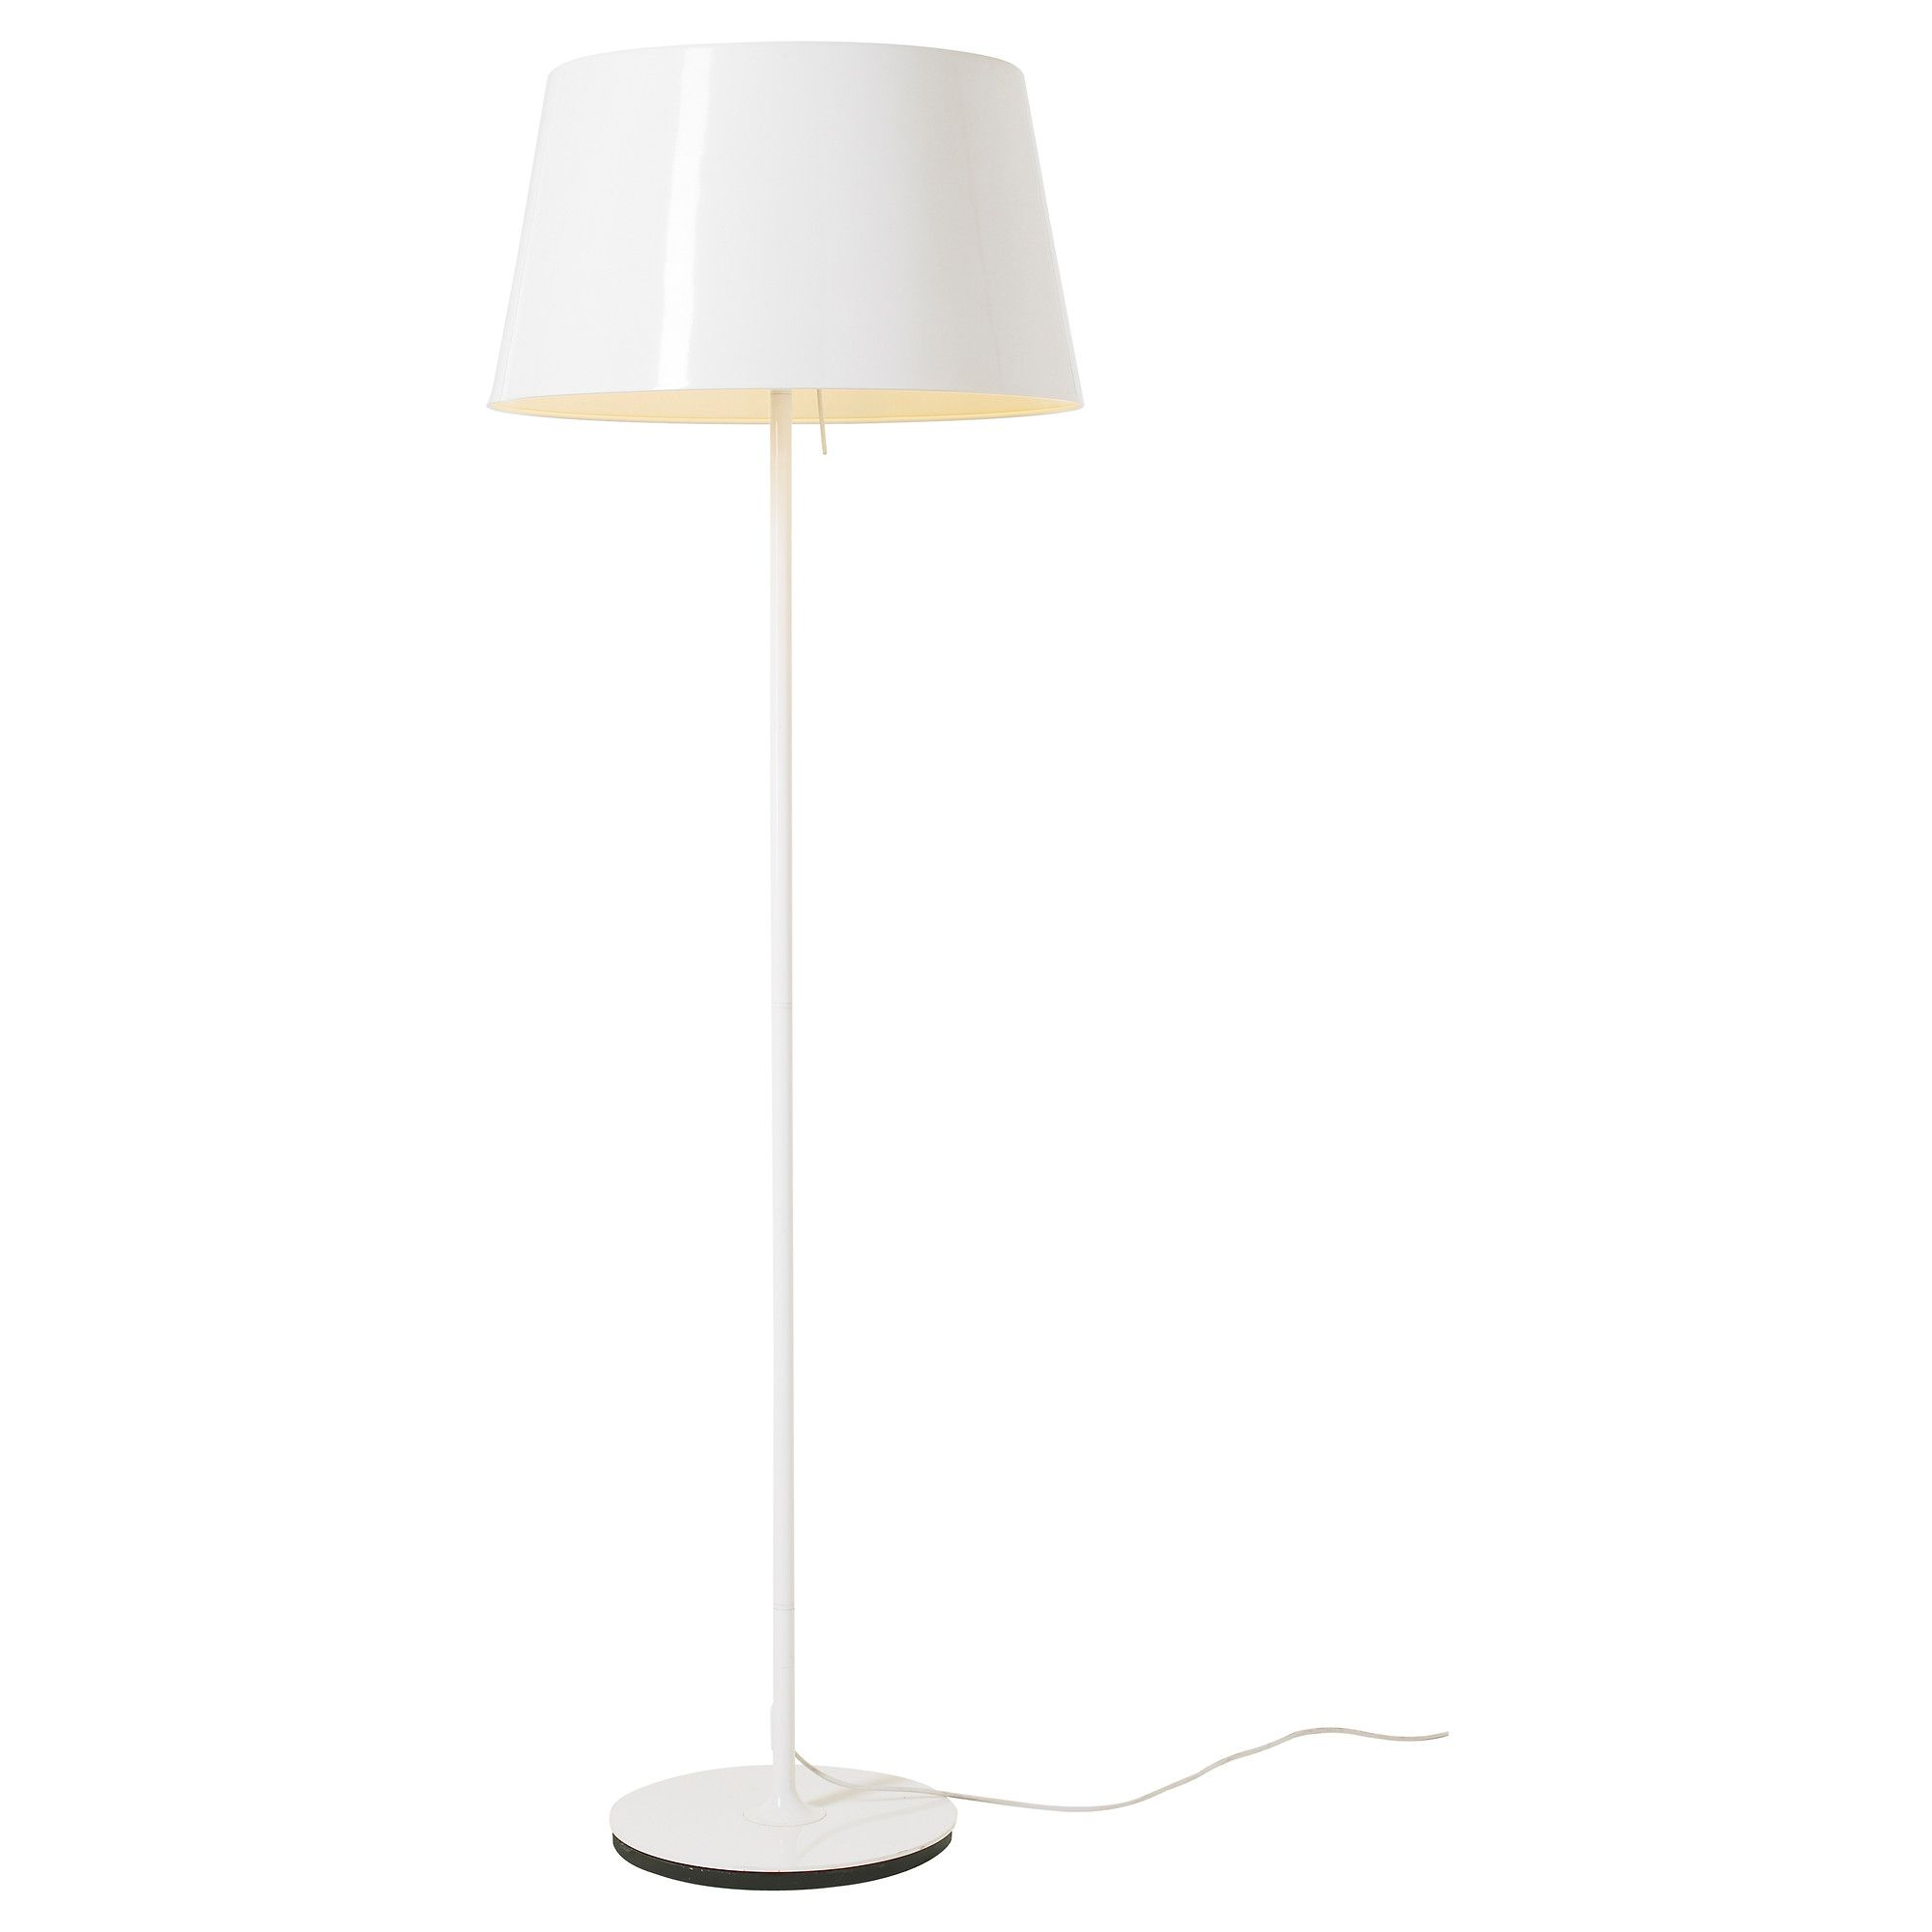 Applique Liseuse Ikea Kulla Floor Lamp Ikea Lighting White Floor Lamp Ikea